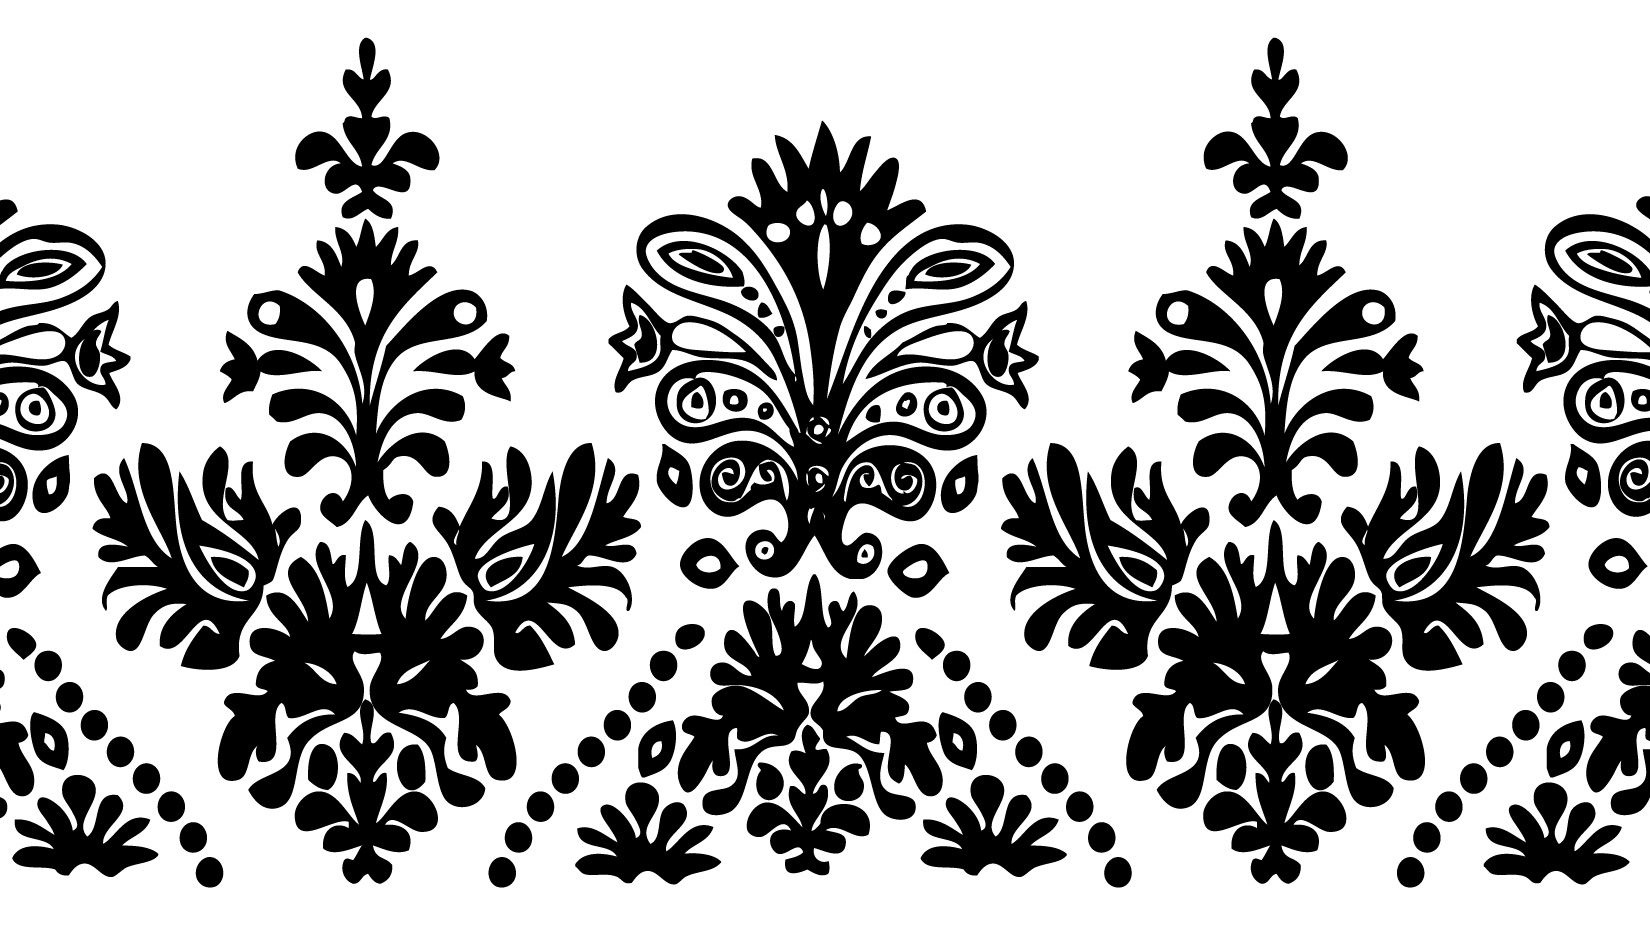 Free Printable Stencils For Painting | Stencils Designs Free - Free Printable Stencils For Painting